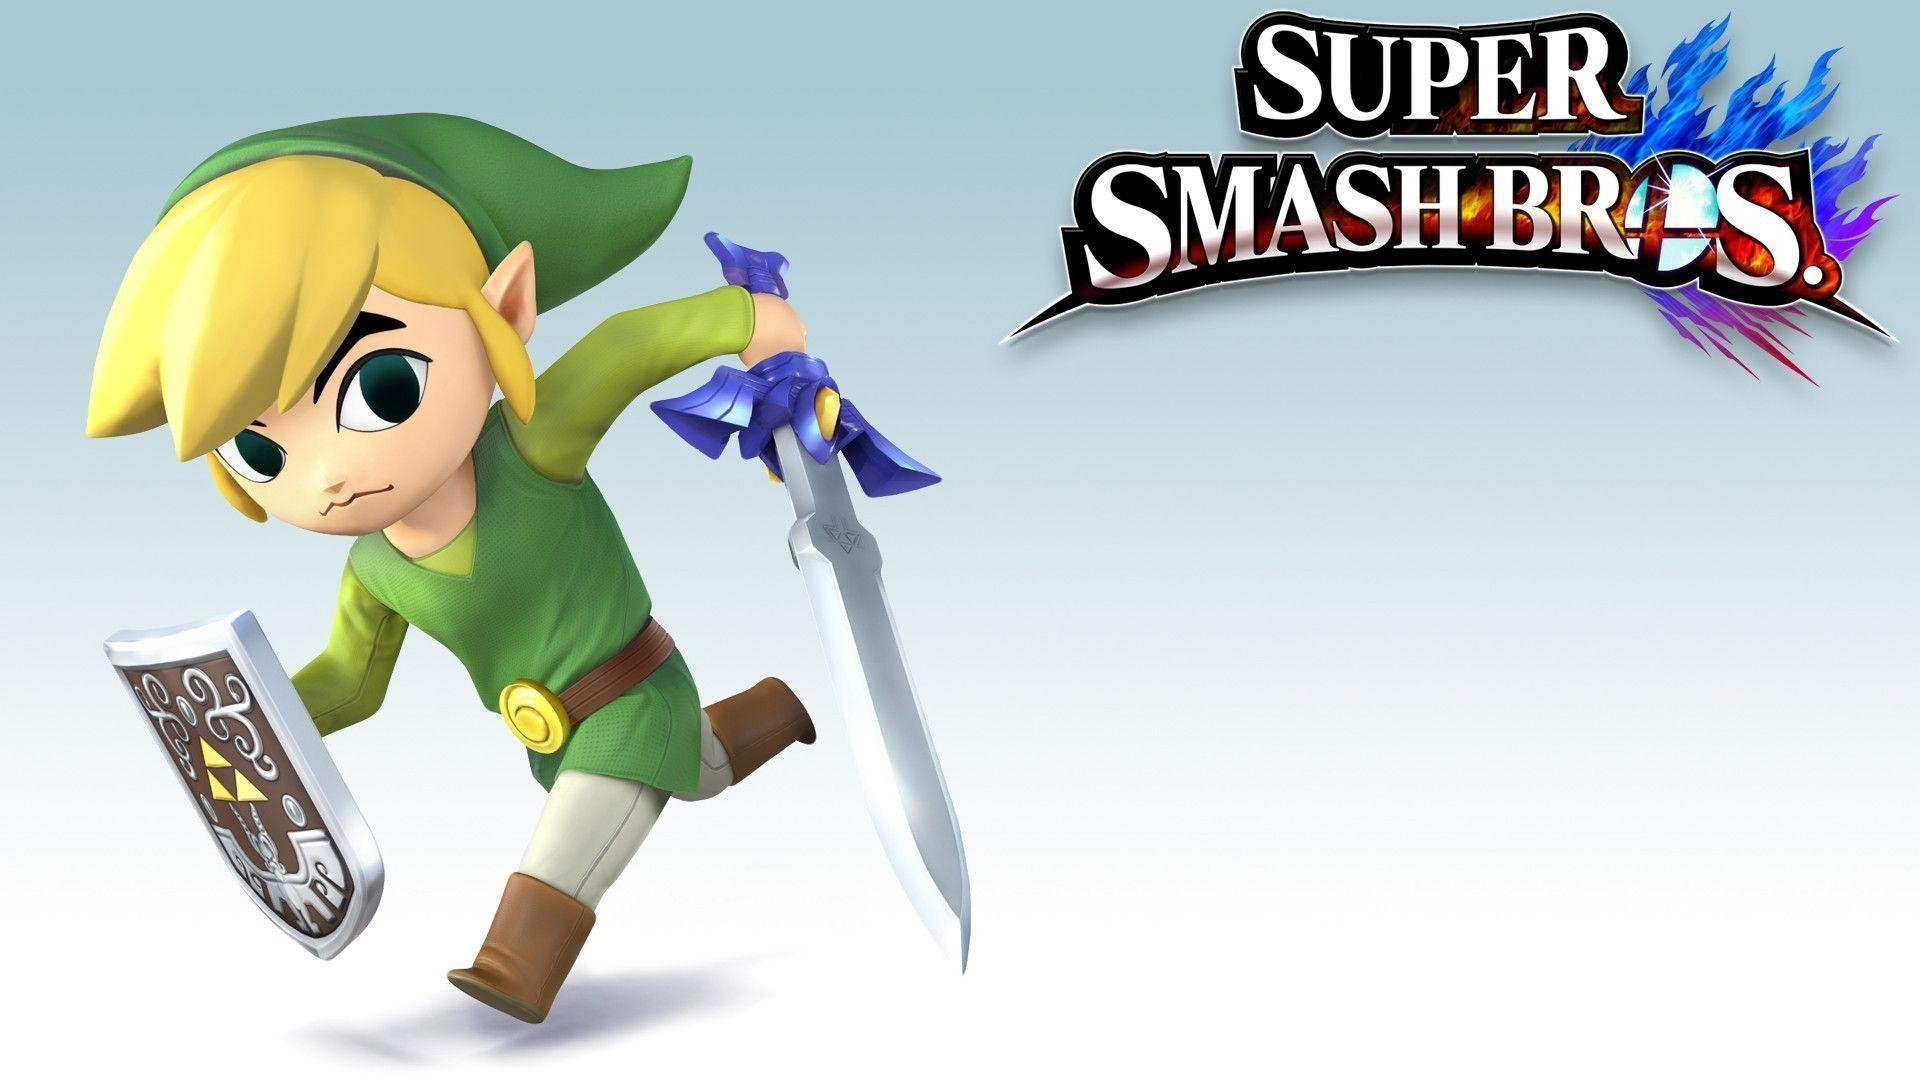 toon link wallpapers - wallpaper cave